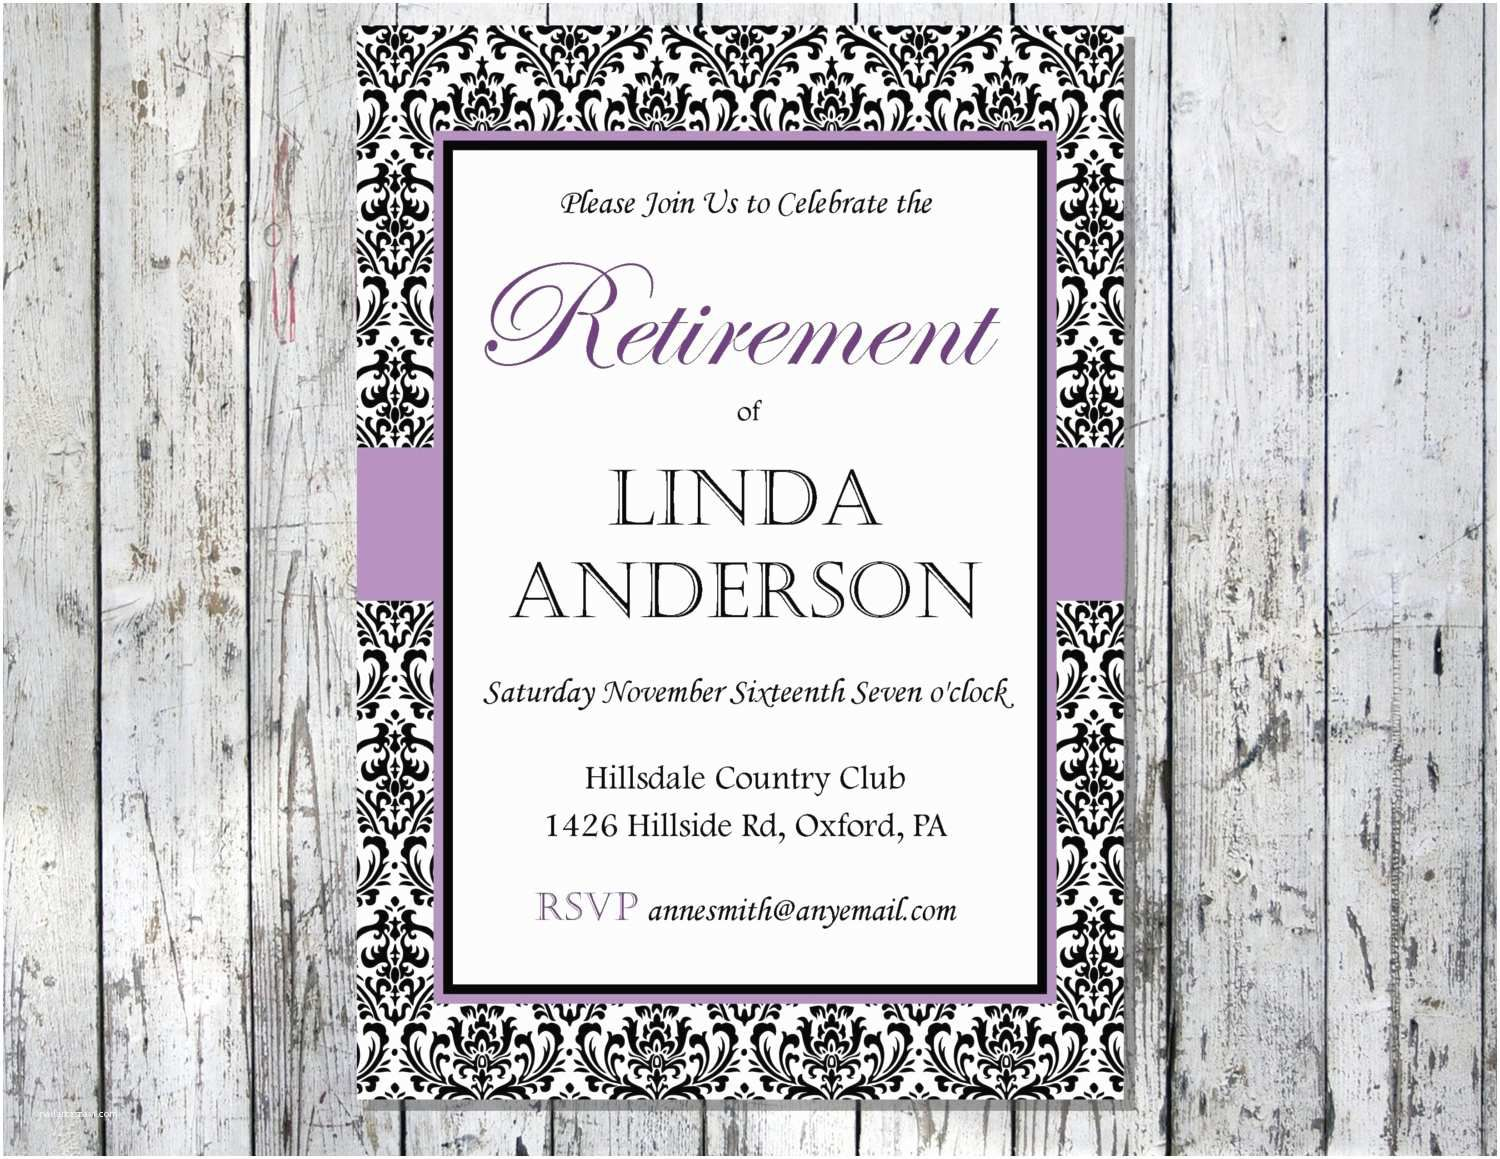 007 Excellent Free Retirement Invitation Template Idea  Templates Microsoft Word Party FlyerFull